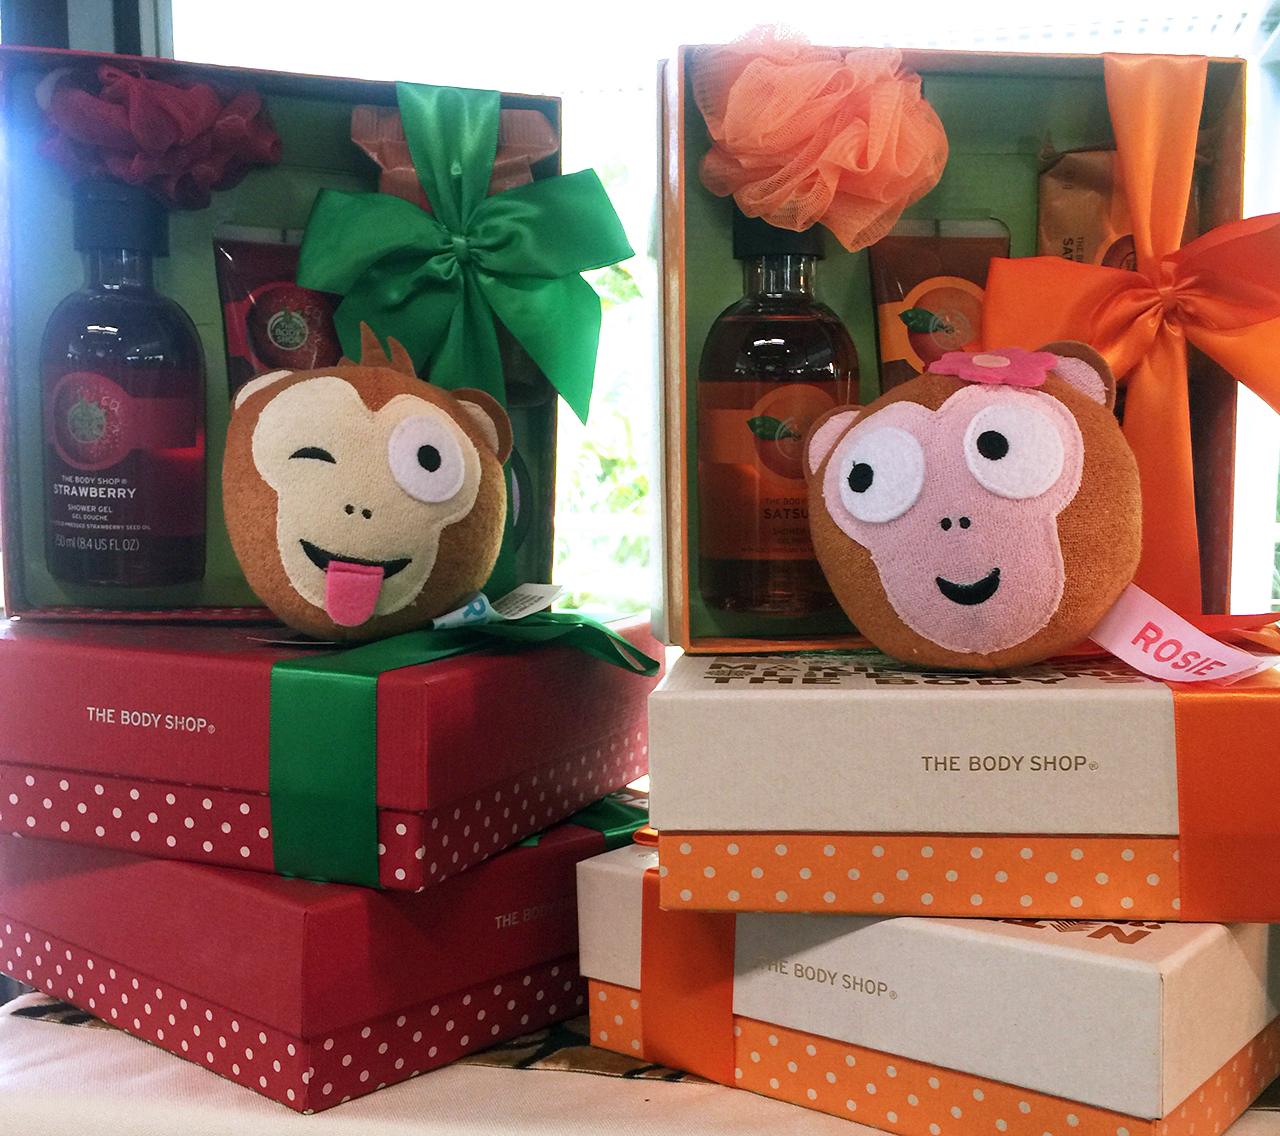 The Body Shop Reggie Sponge for Christmas 2016